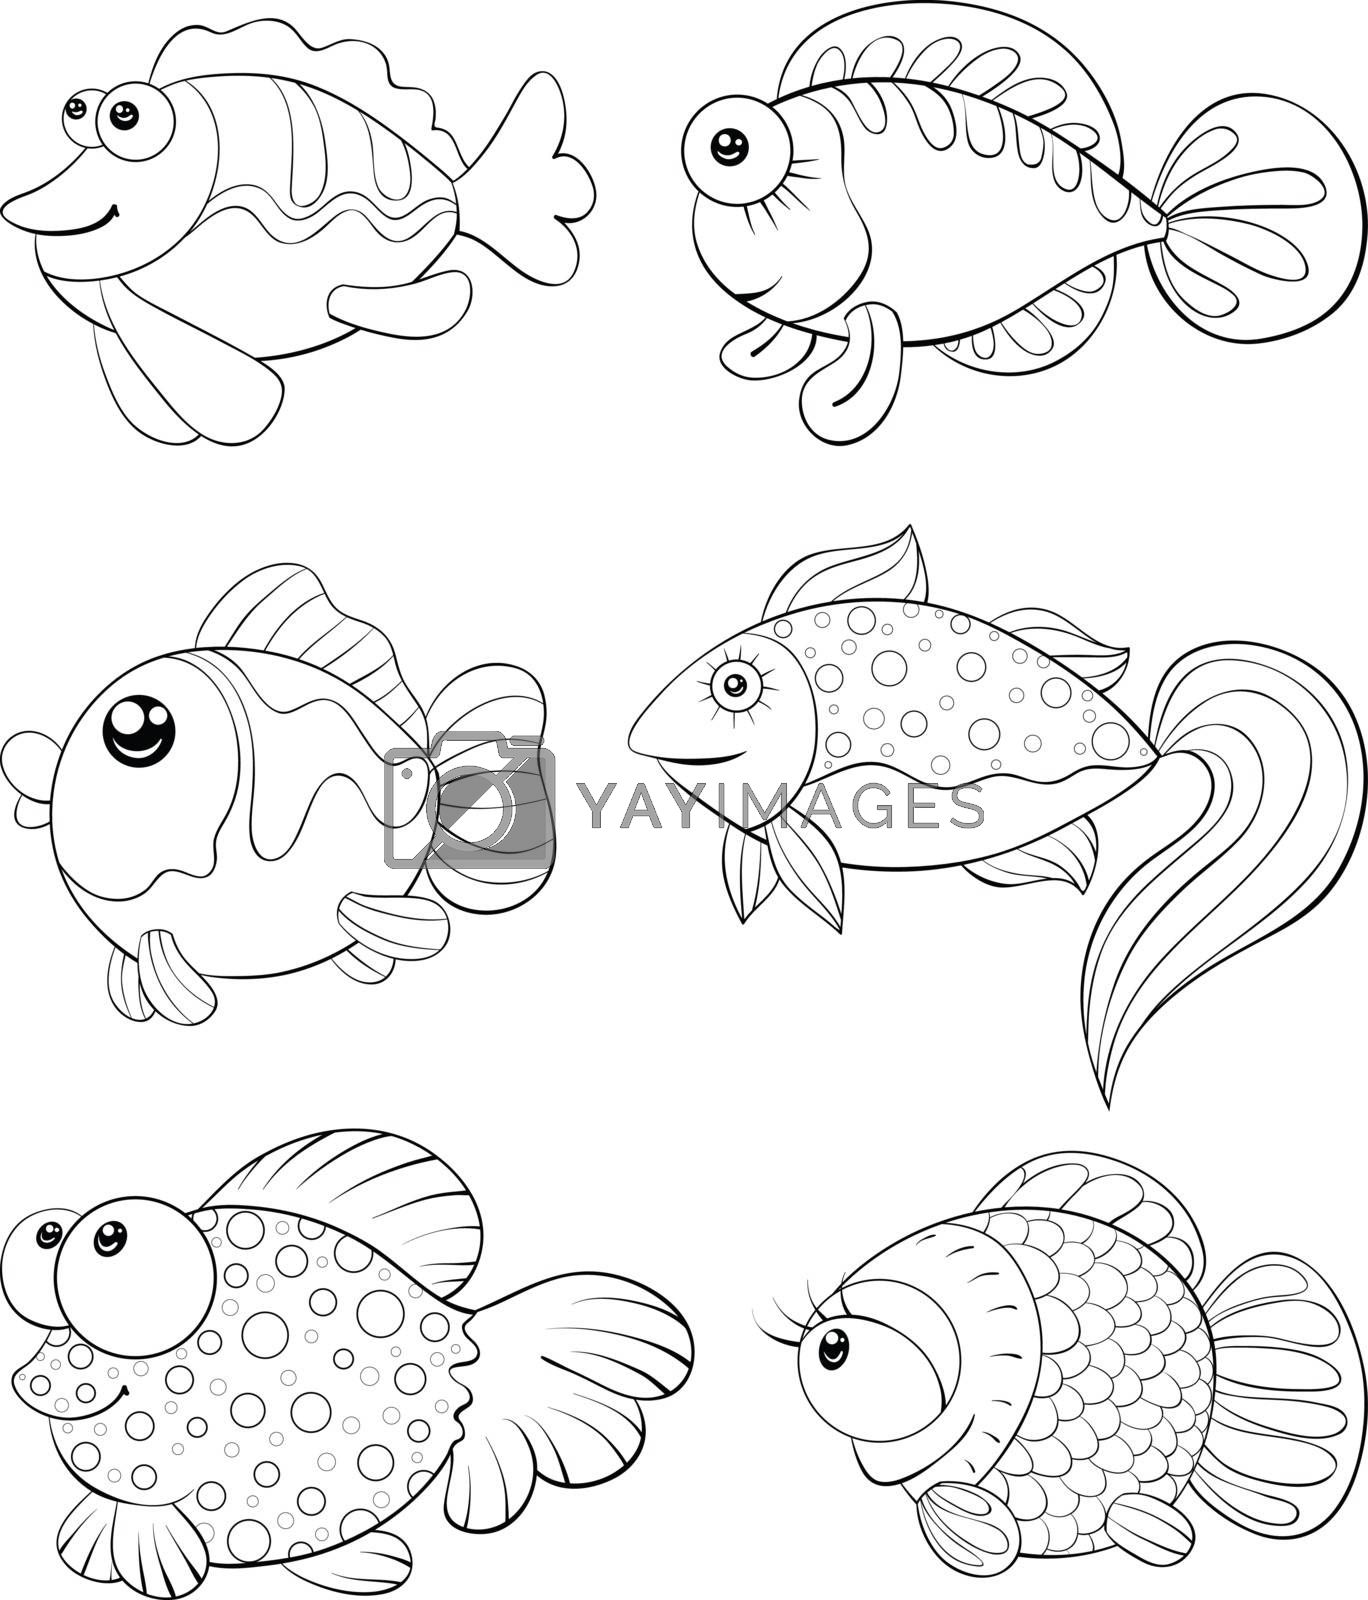 A children coloring book,page for relaxing,a set of cartoon fish by Nonuzza